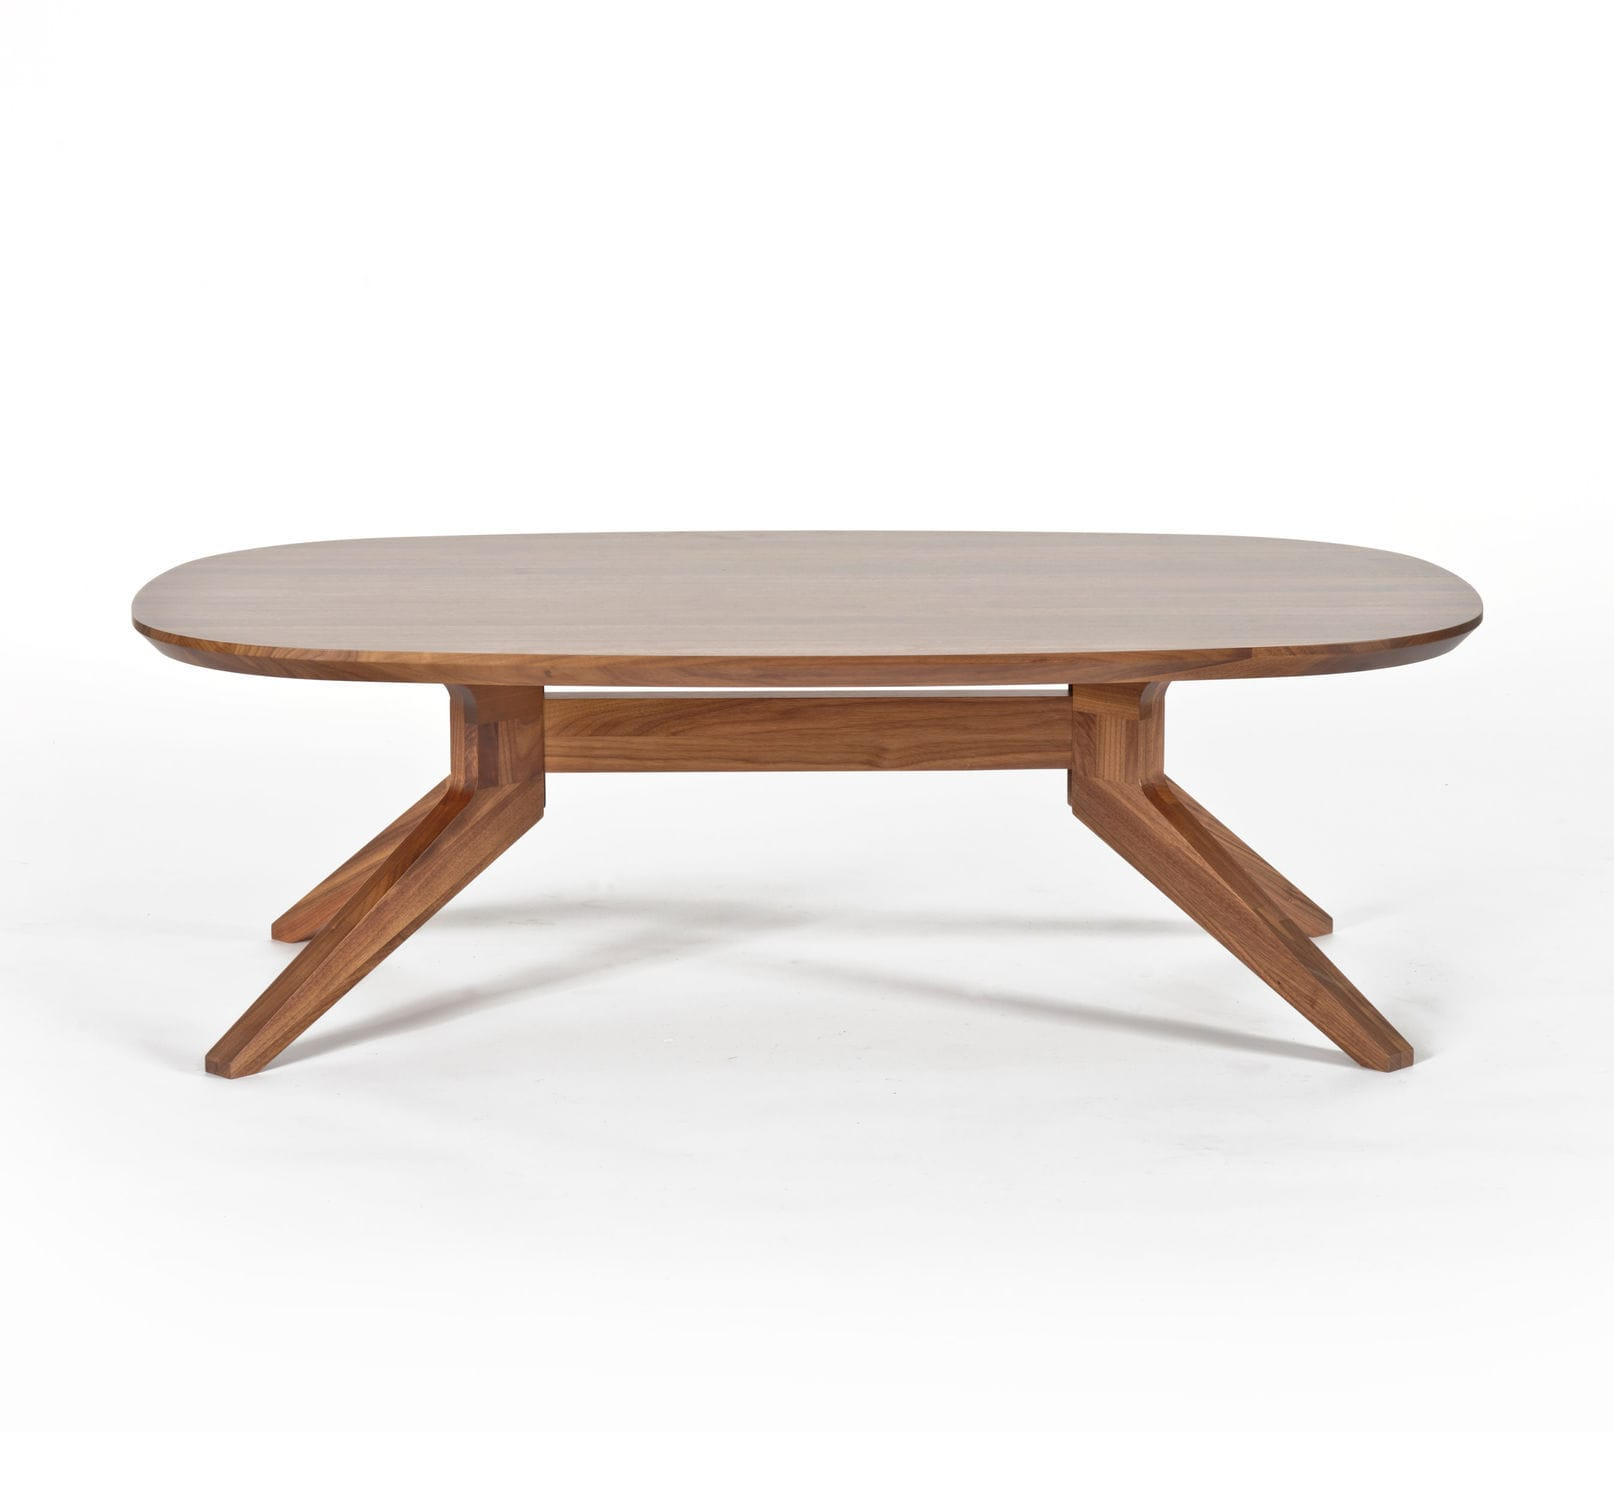 Contemporary coffee table wooden oval round CROSS by